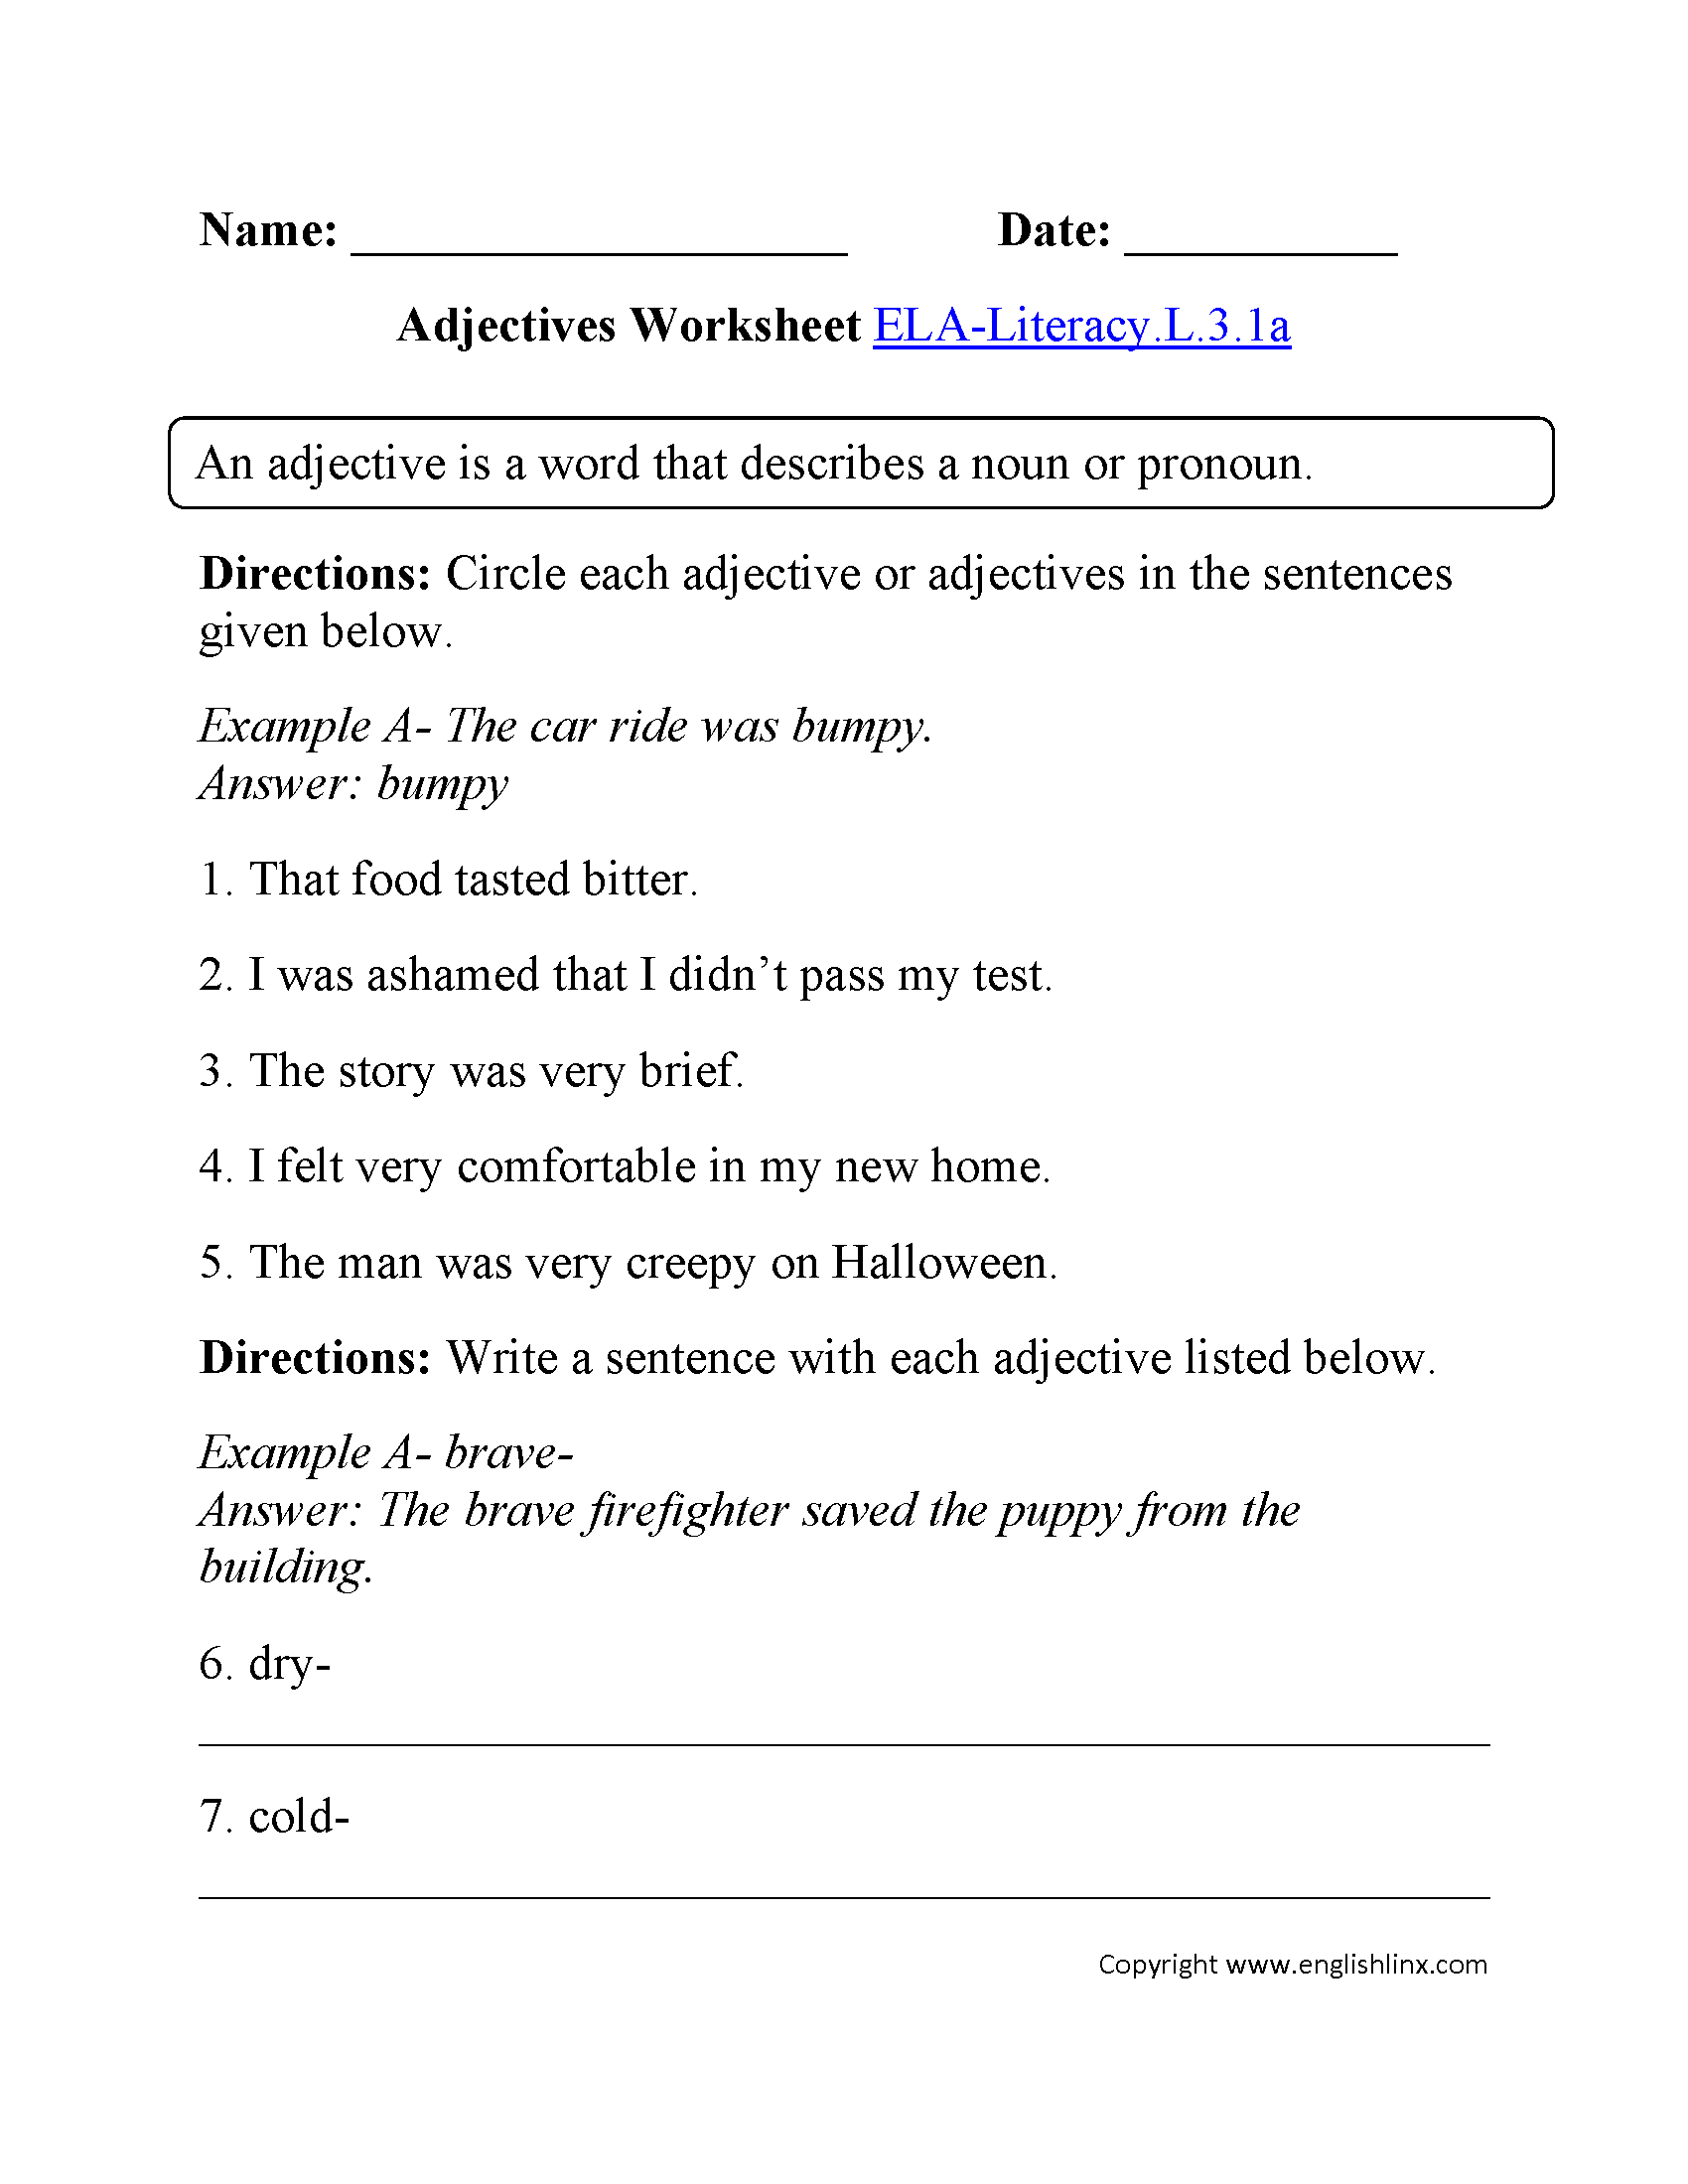 Adjectives Worksheet 2 (L.3.1)